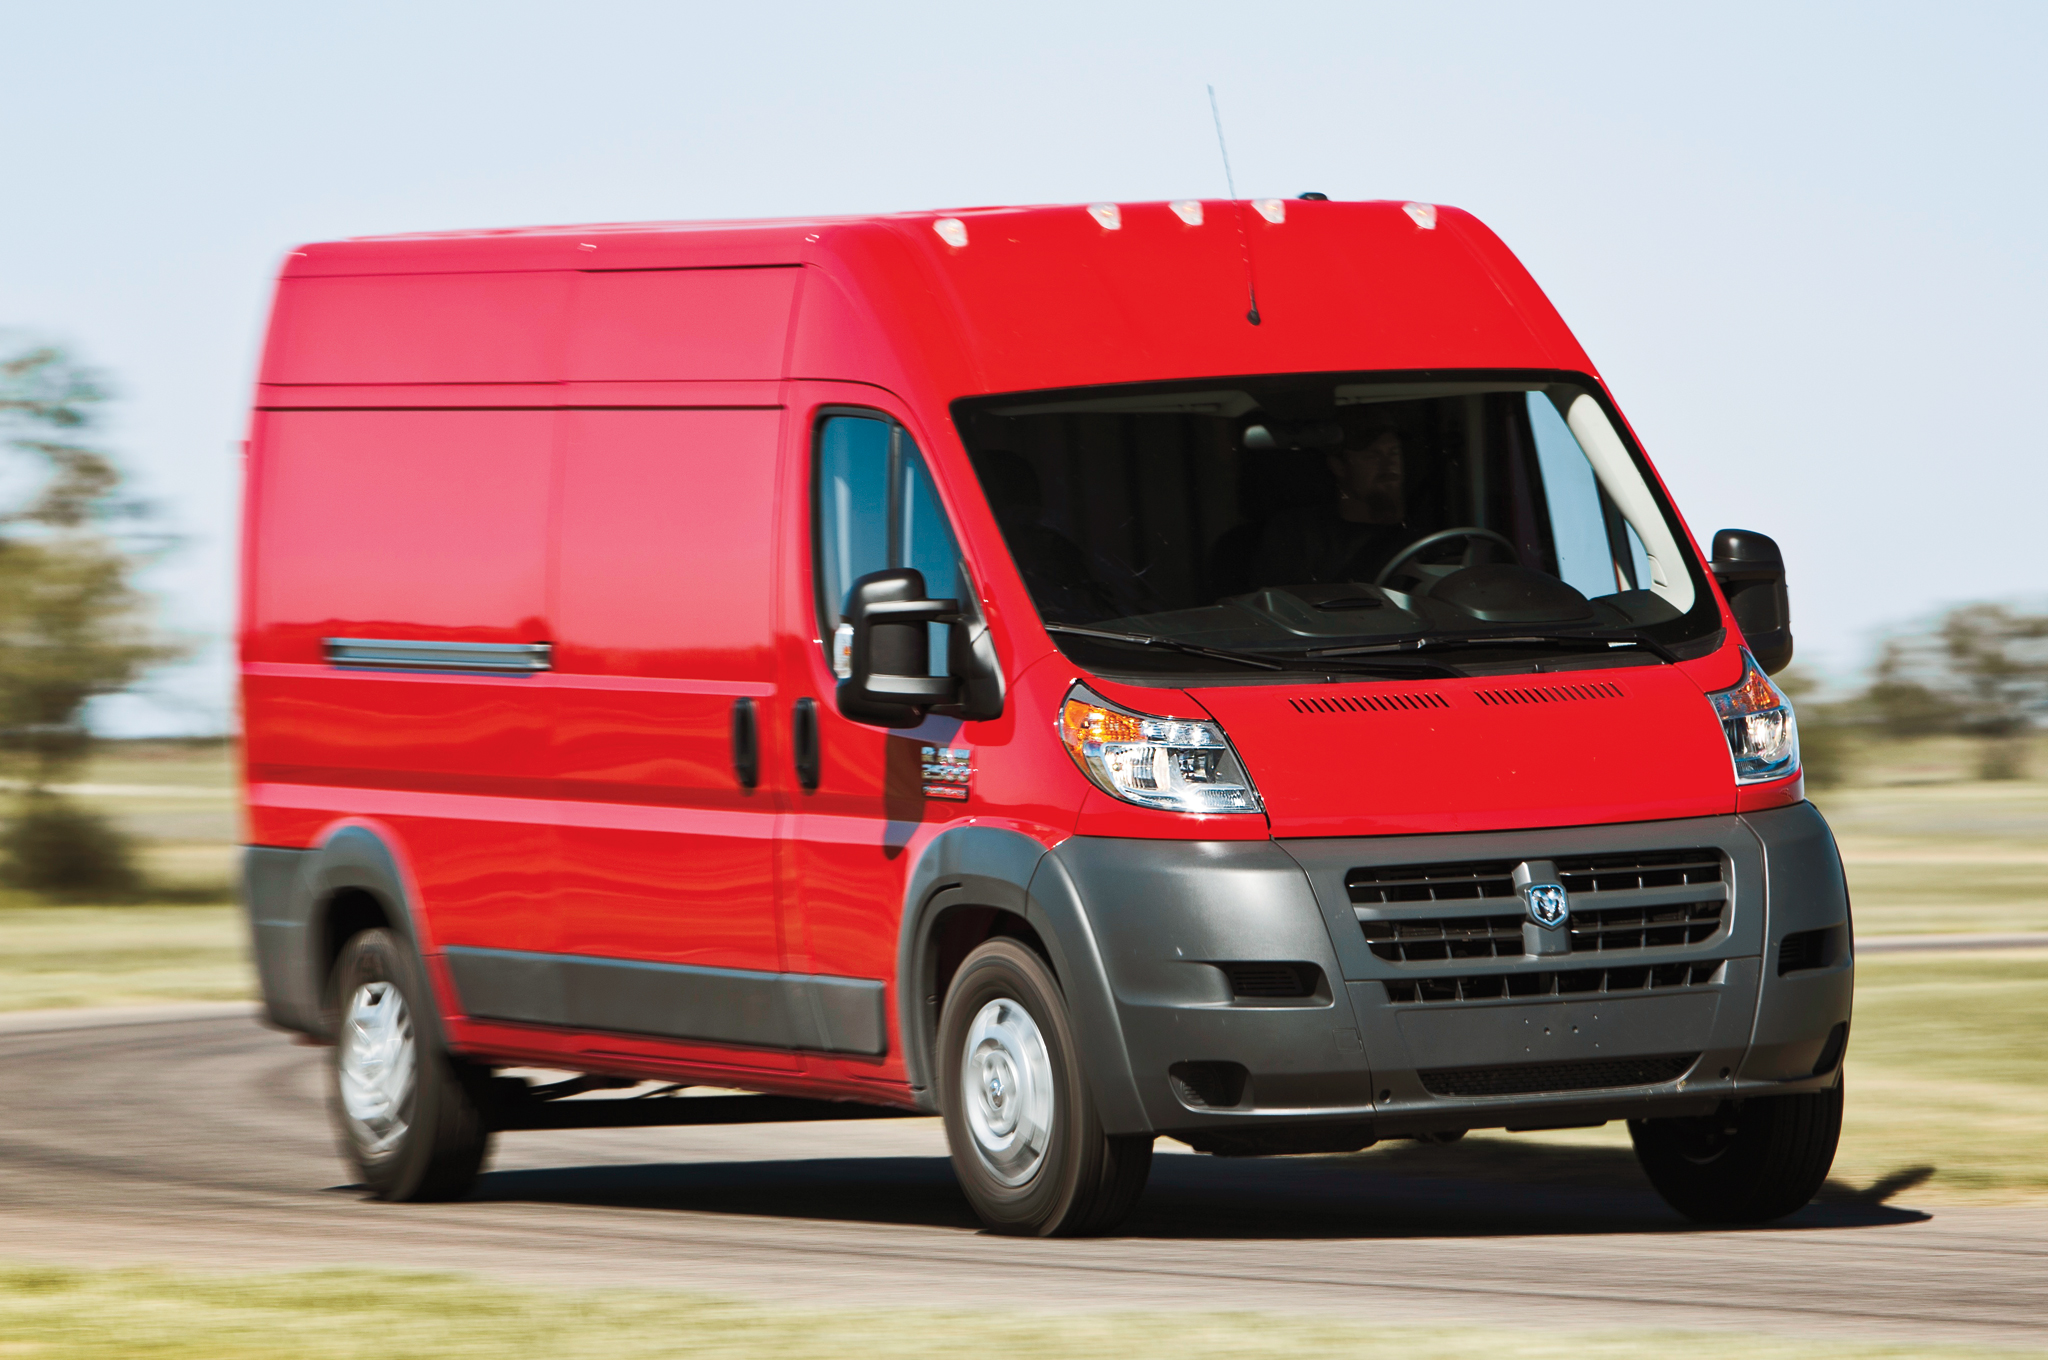 2015 ram promaster city information and photos zombiedrive. Black Bedroom Furniture Sets. Home Design Ideas